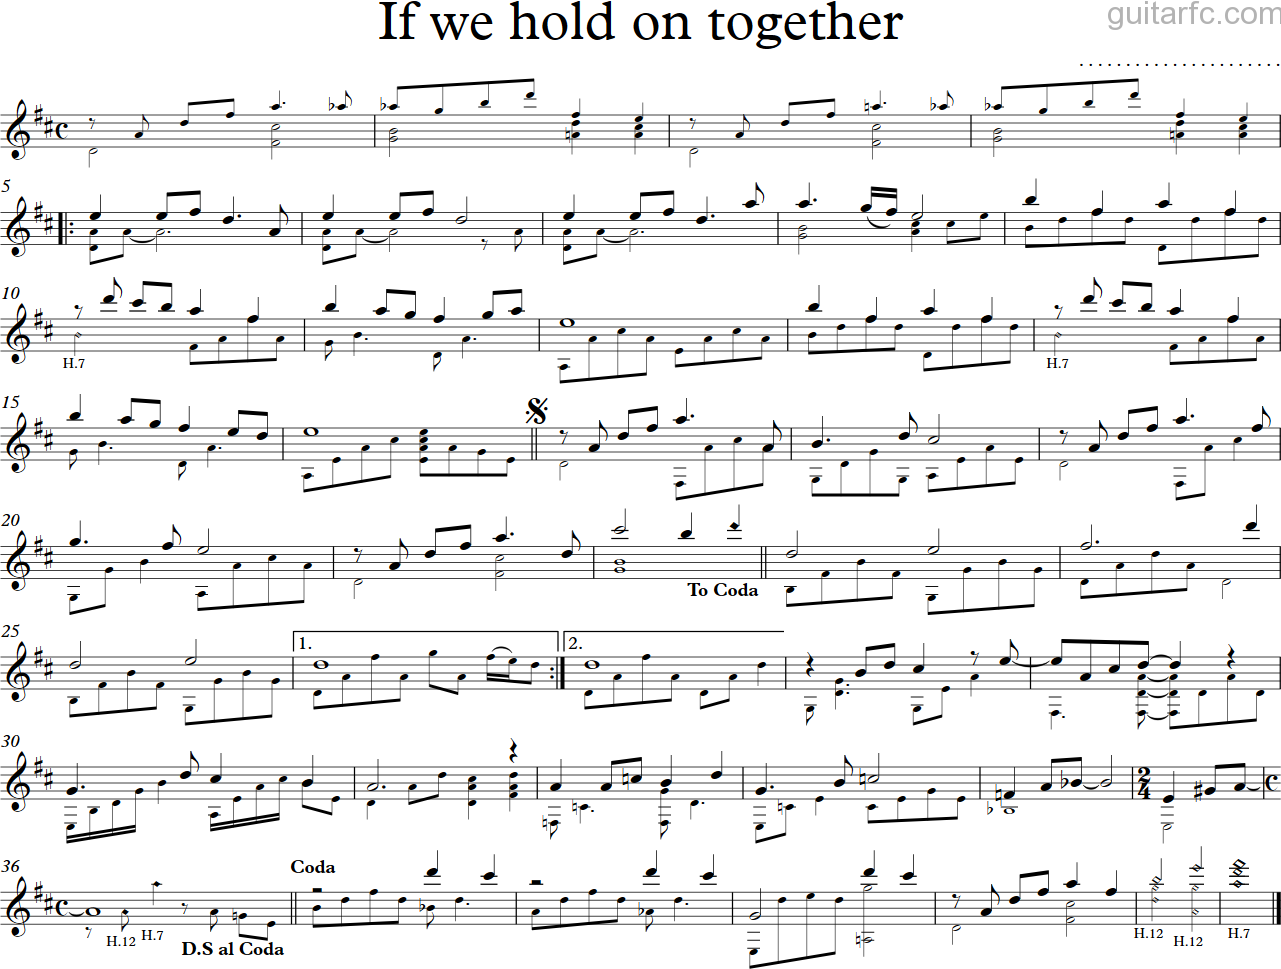 If we hold together - guitar